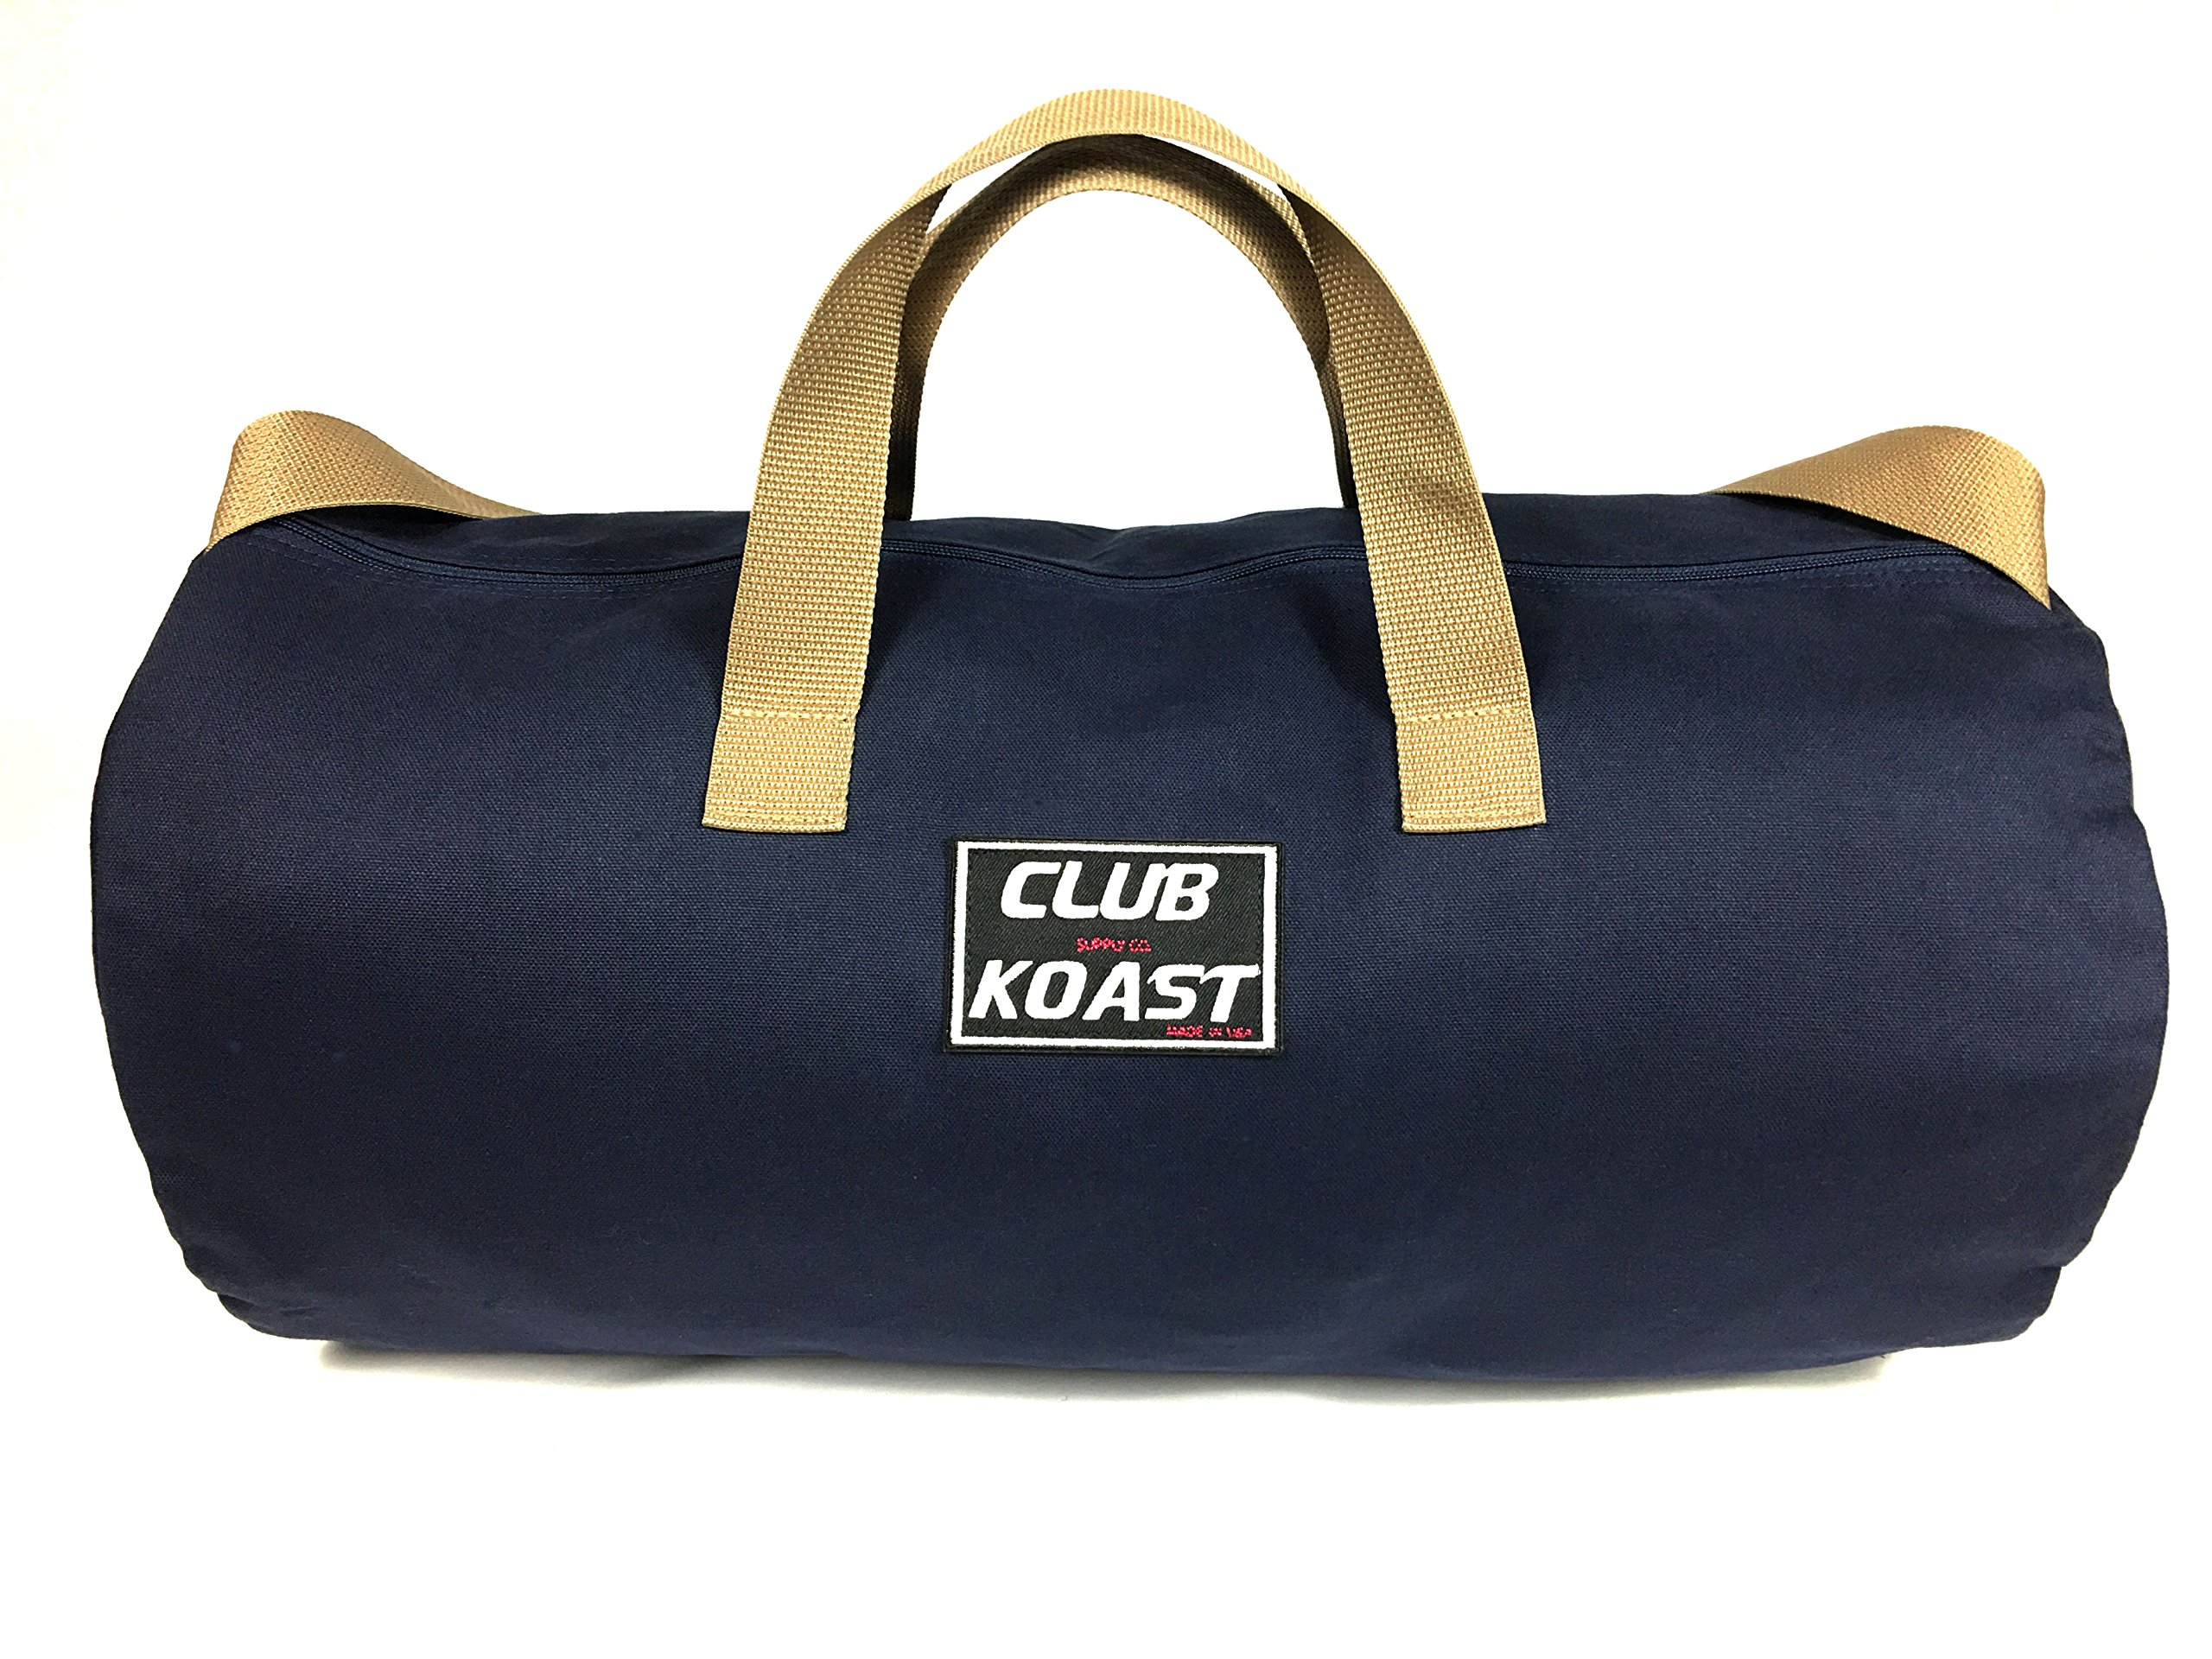 Club Koast Weekender Canvas Duffel Bag. Simple Version for Gym, Sports, Active, Travel, Heavy Duty (Made in USA)